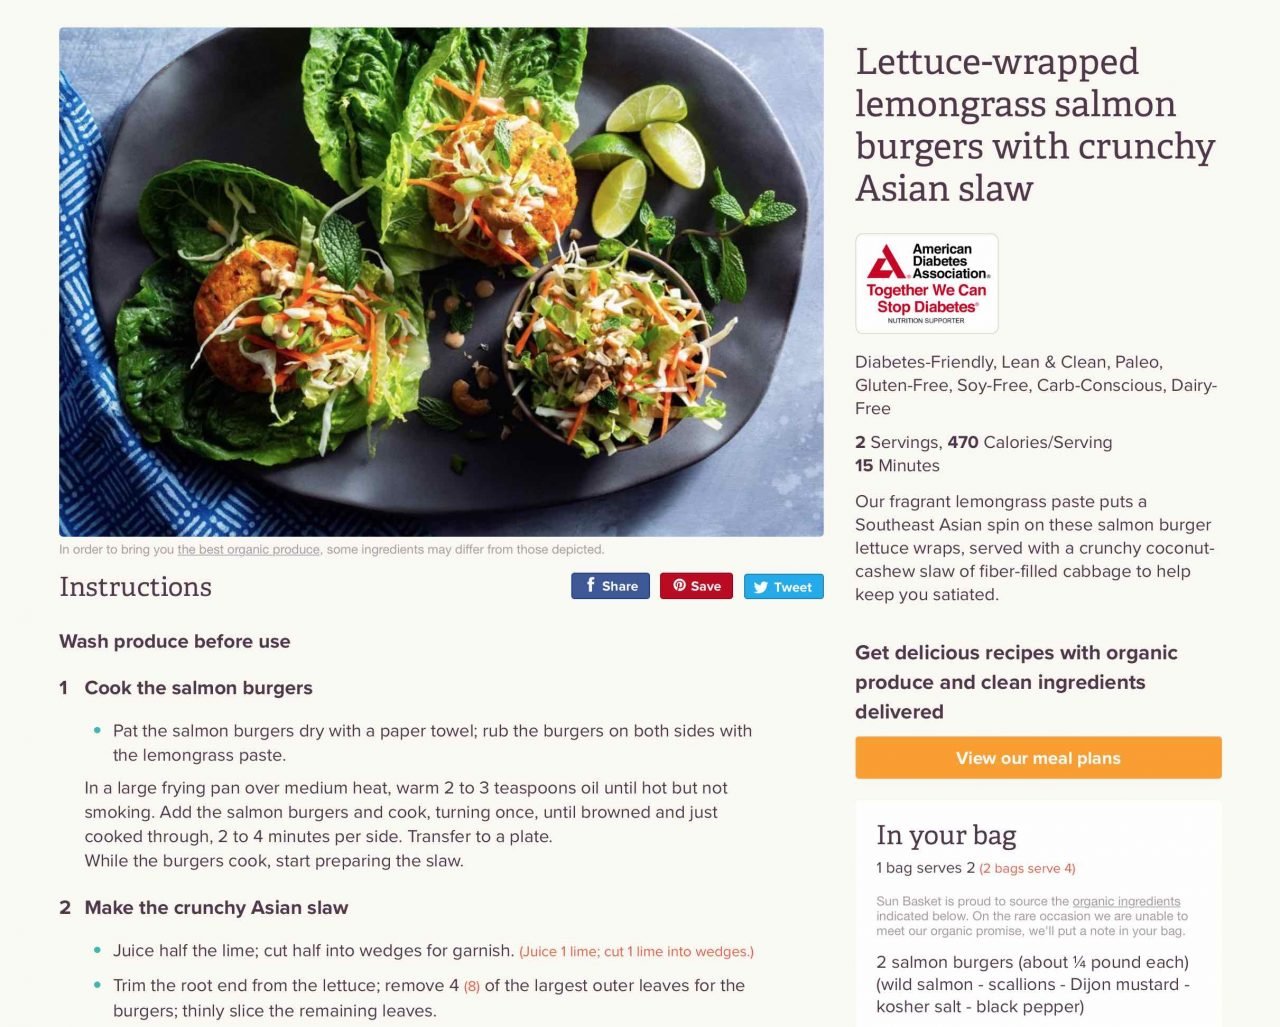 lettuce-wrapped salmon burger recipe